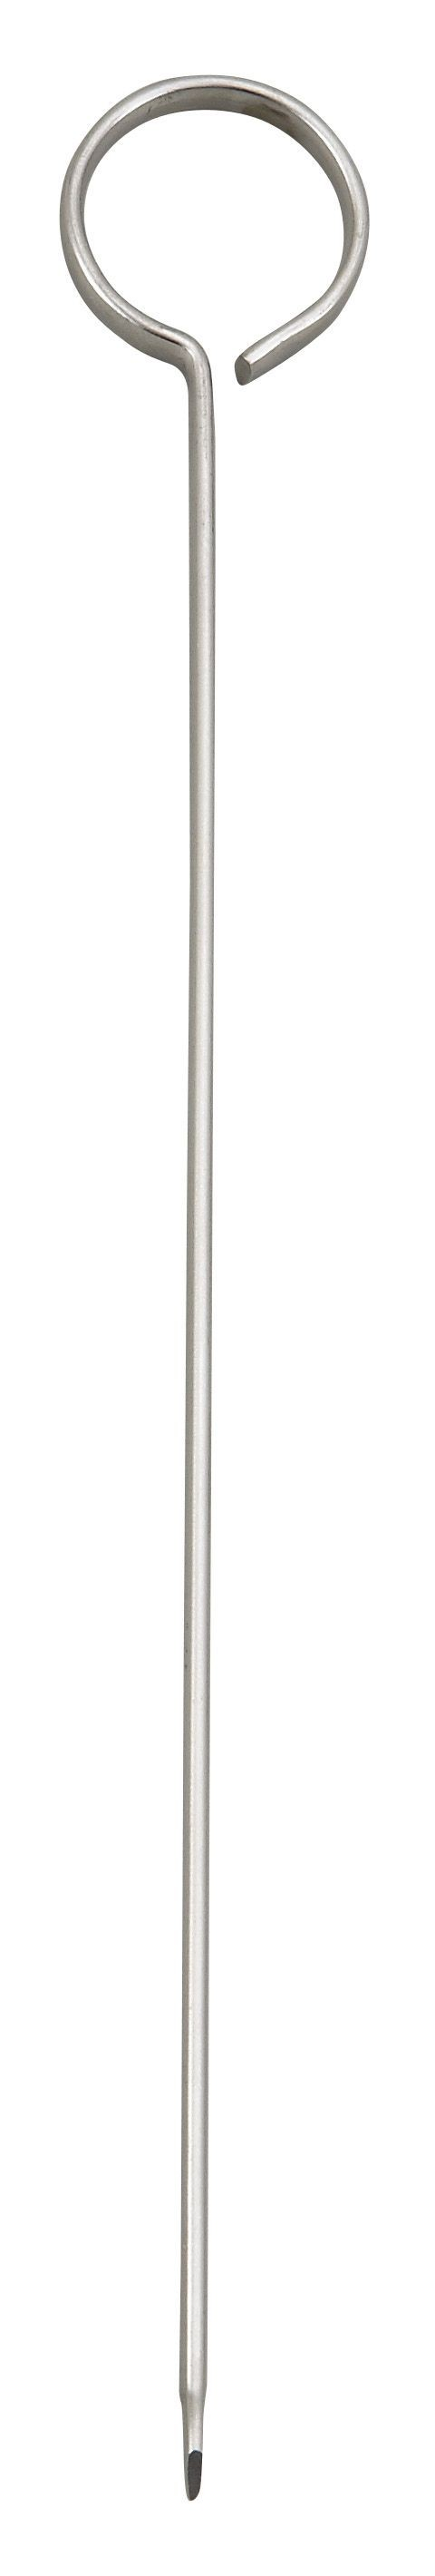 Oval-Tipped Stainless Steel Skewer - 8